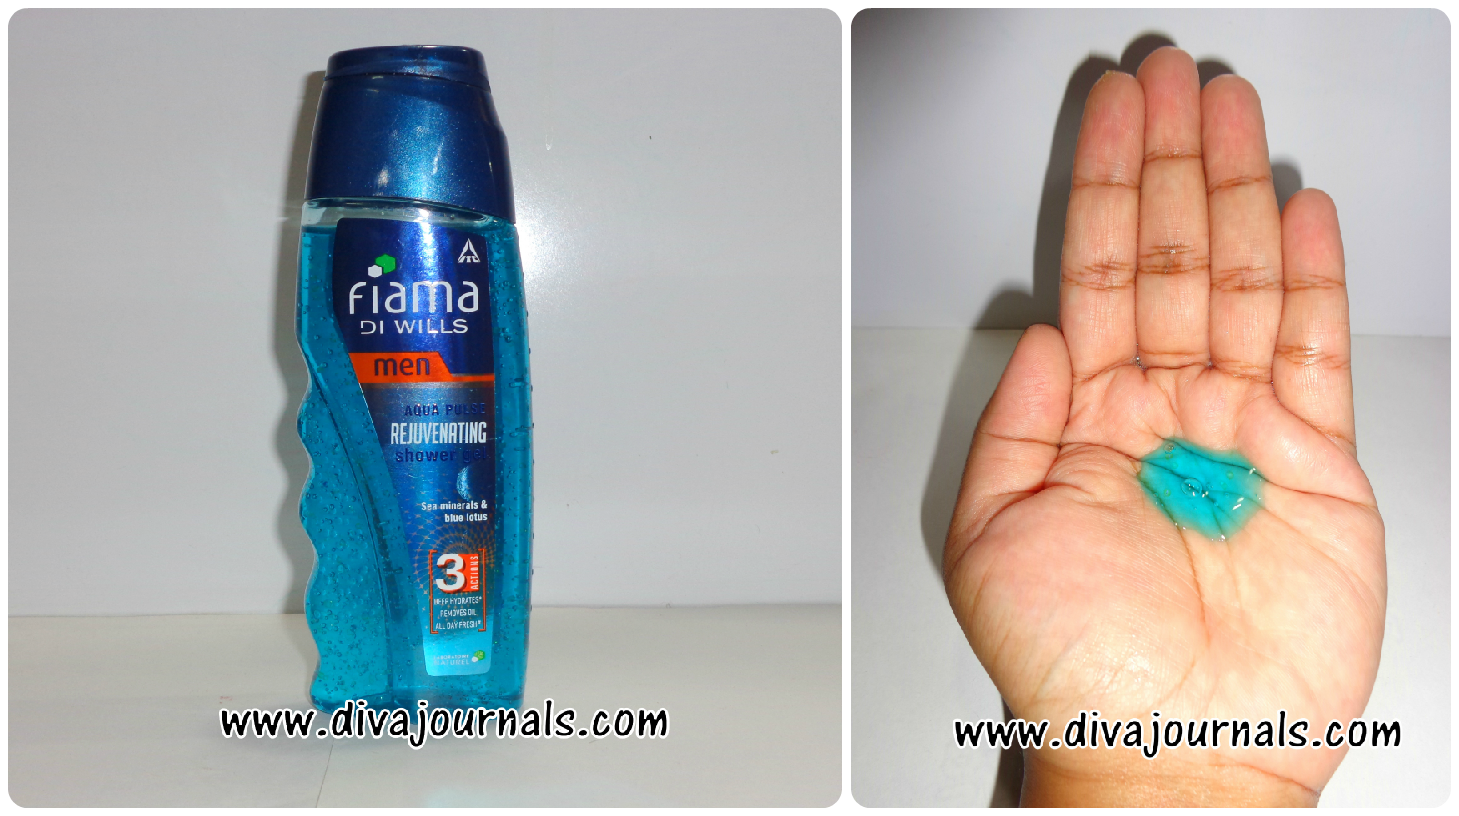 Fiama Di Wills Men - Aqua Pulse Rejuvenating Shower Gel (Dark Blue Bottle)